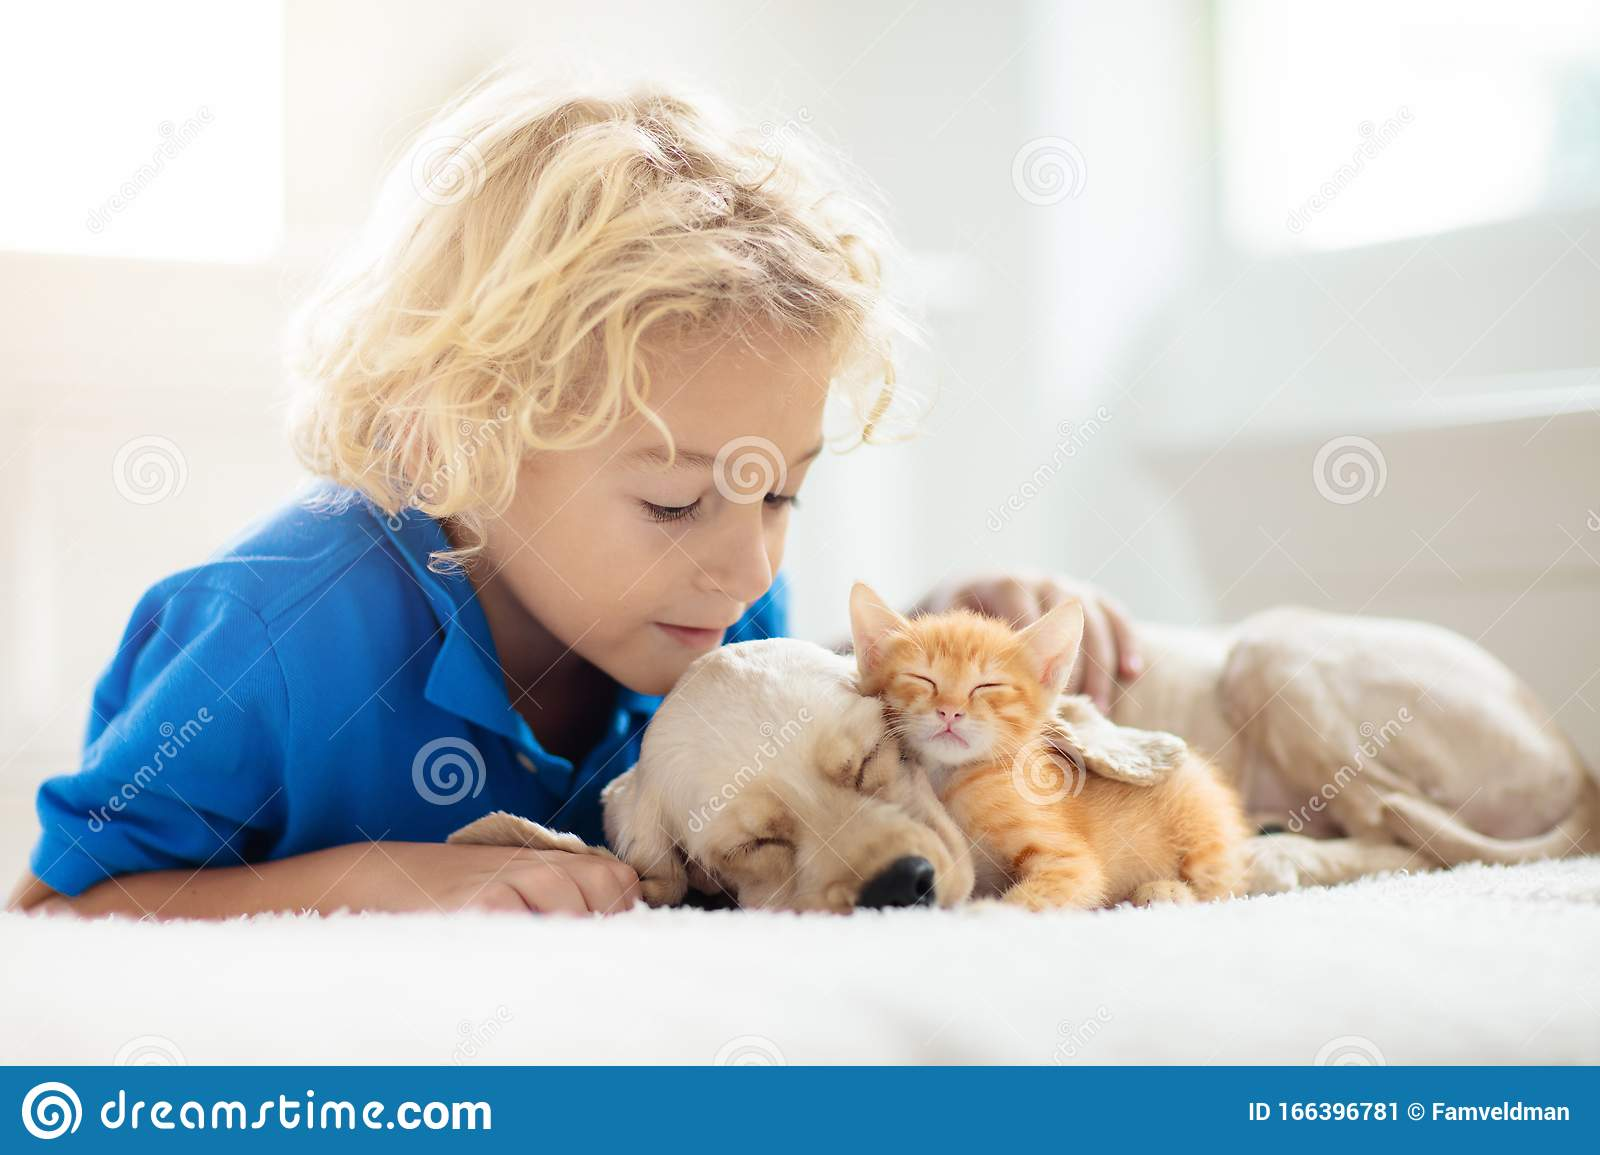 Child Dog And Cat Kids Play With Puppy Kitten Stock Image Image Of Love Pets 166396781